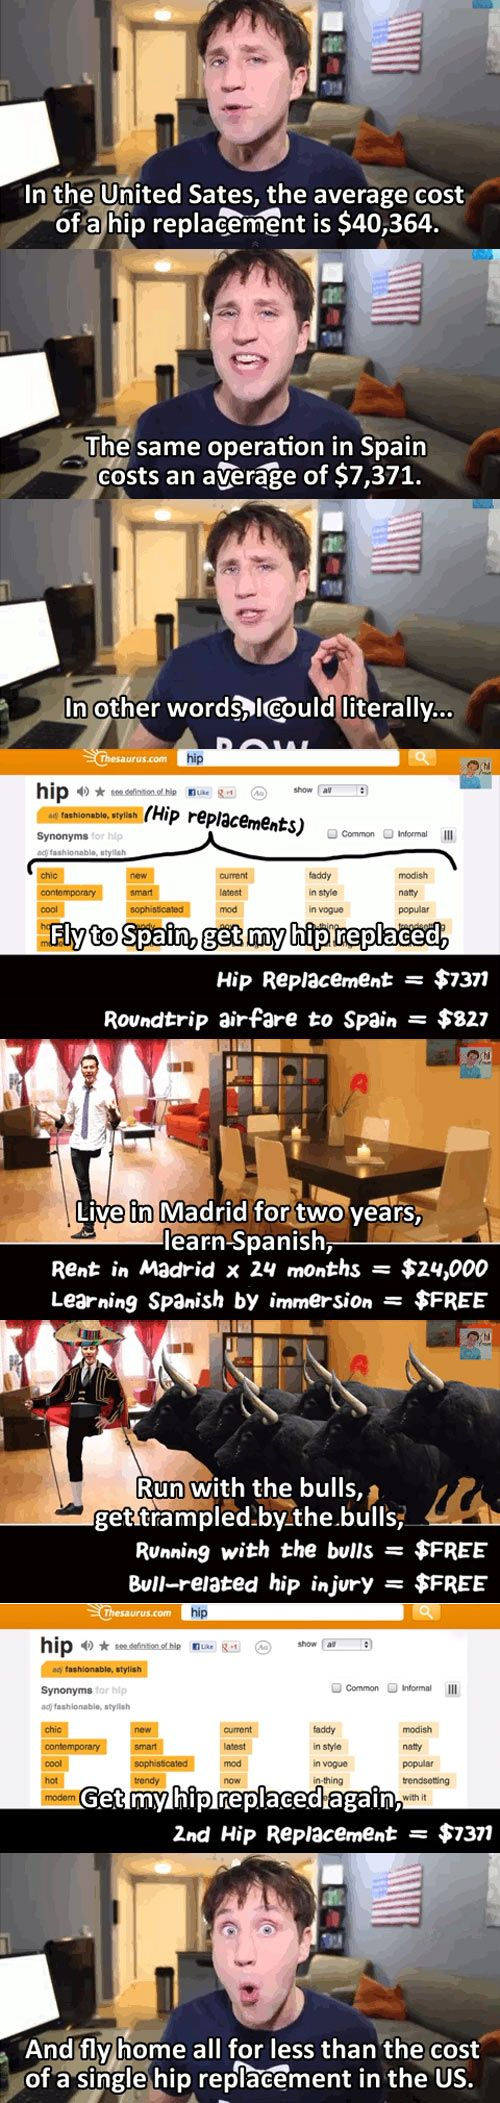 The real cost of getting sick in the US…now I want to get a hip replacement! :P